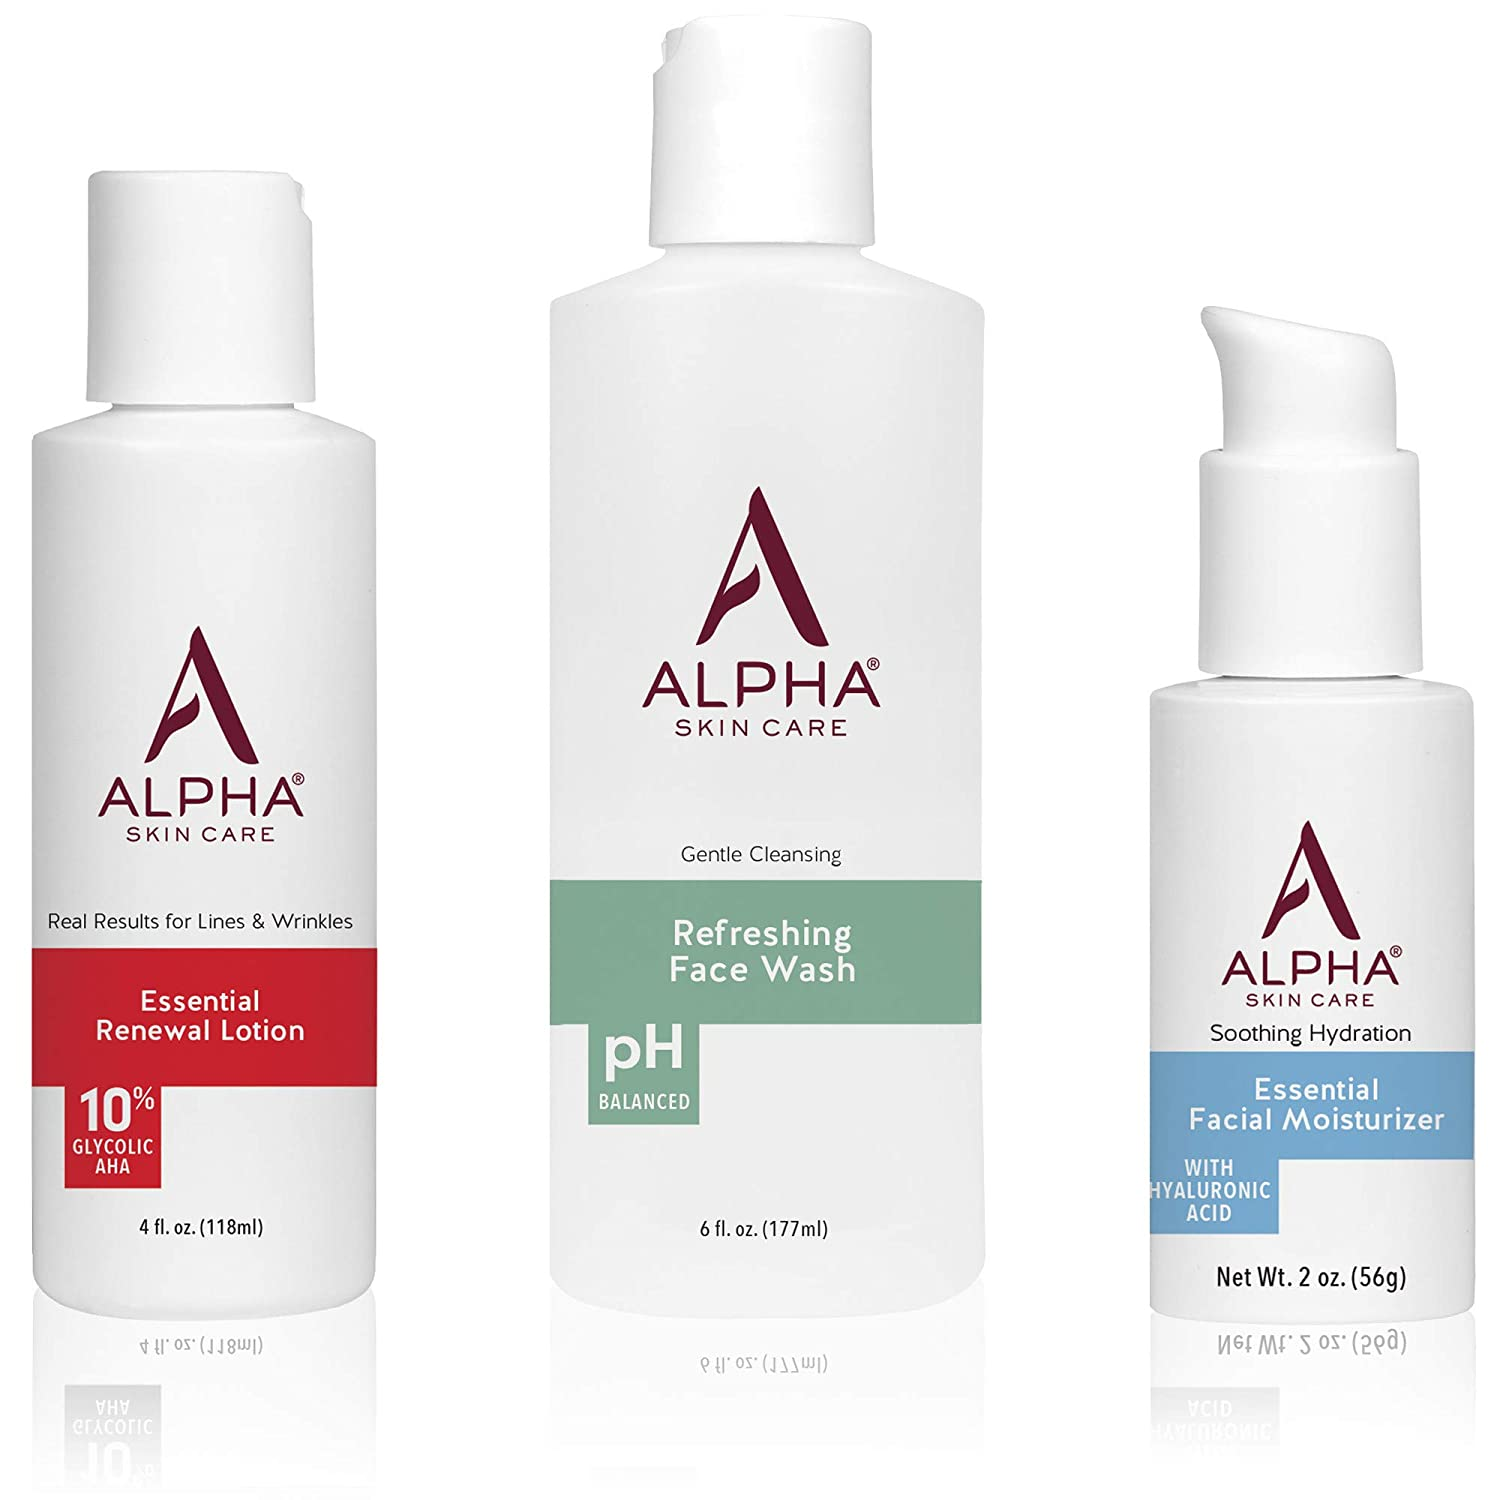 Alpha Skin Care Introductory Kit | Refreshing Face Wash, Essential Renewal Lotion, Essential Facial Moisturizer | Anti-Aging Formula | Reduces the Appearance of Lines & Wrinkles | For All Skin Types